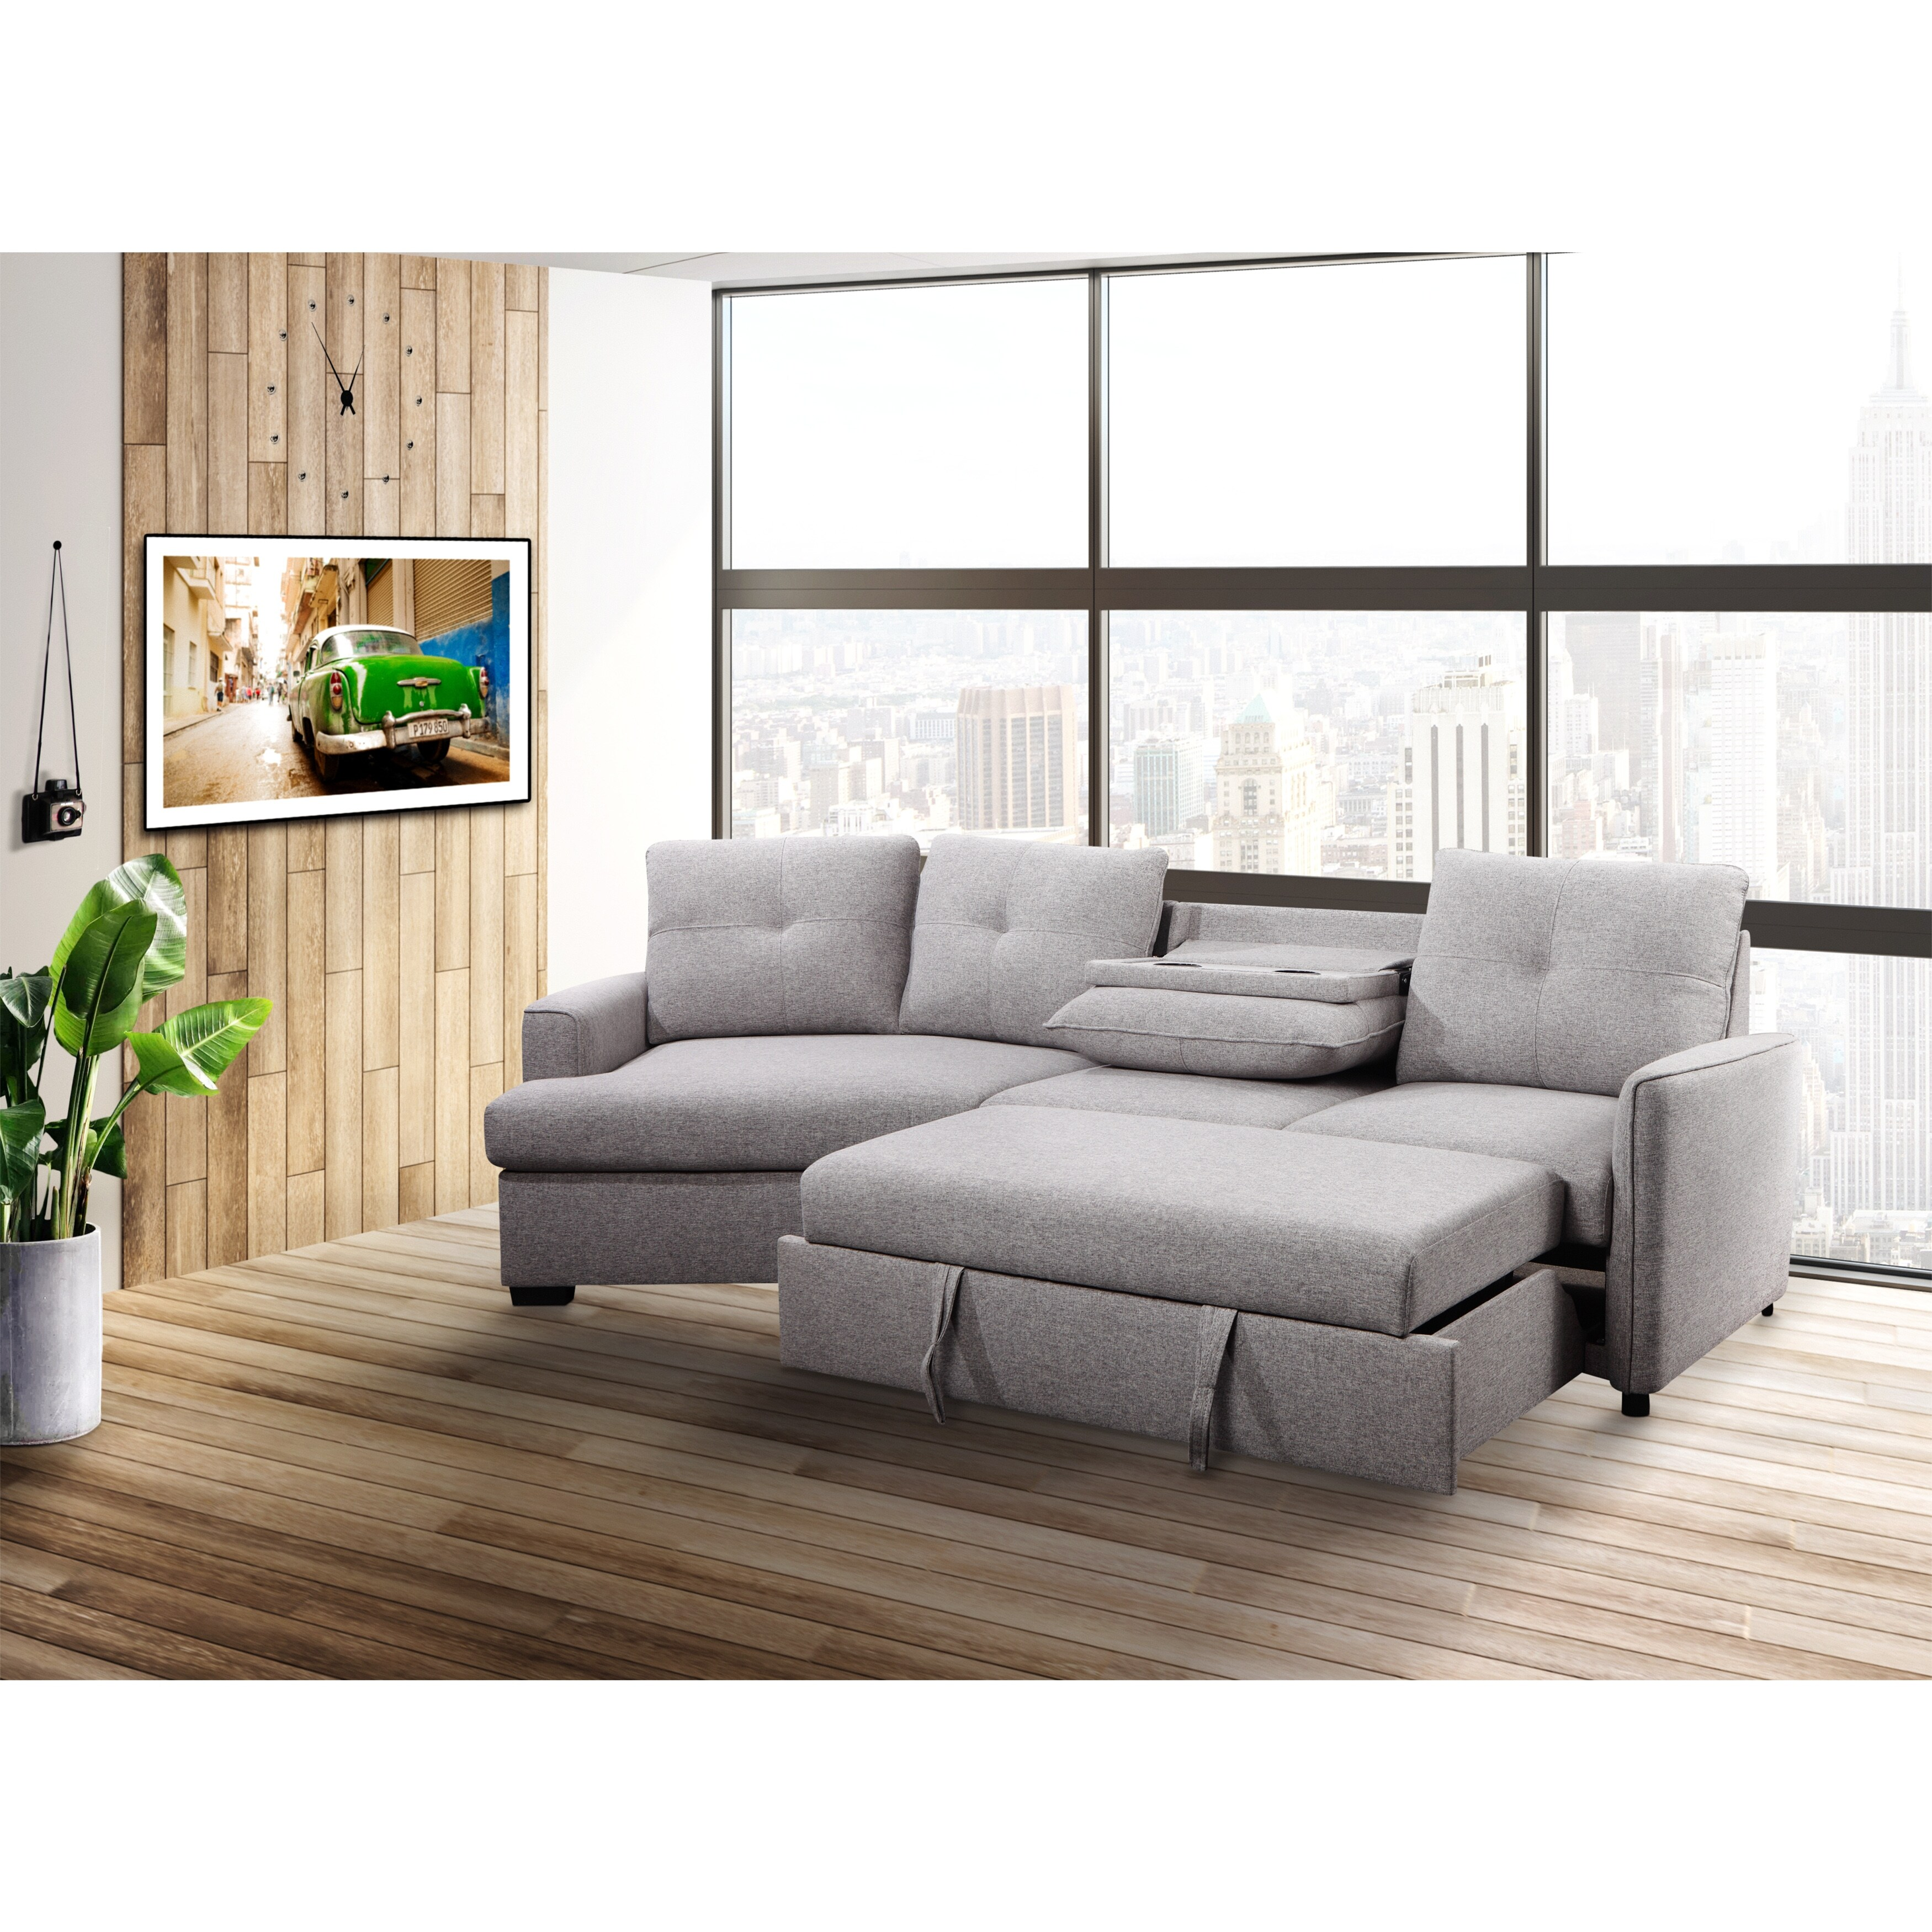 bilo modern grey tufted home theater sectional sofa bed